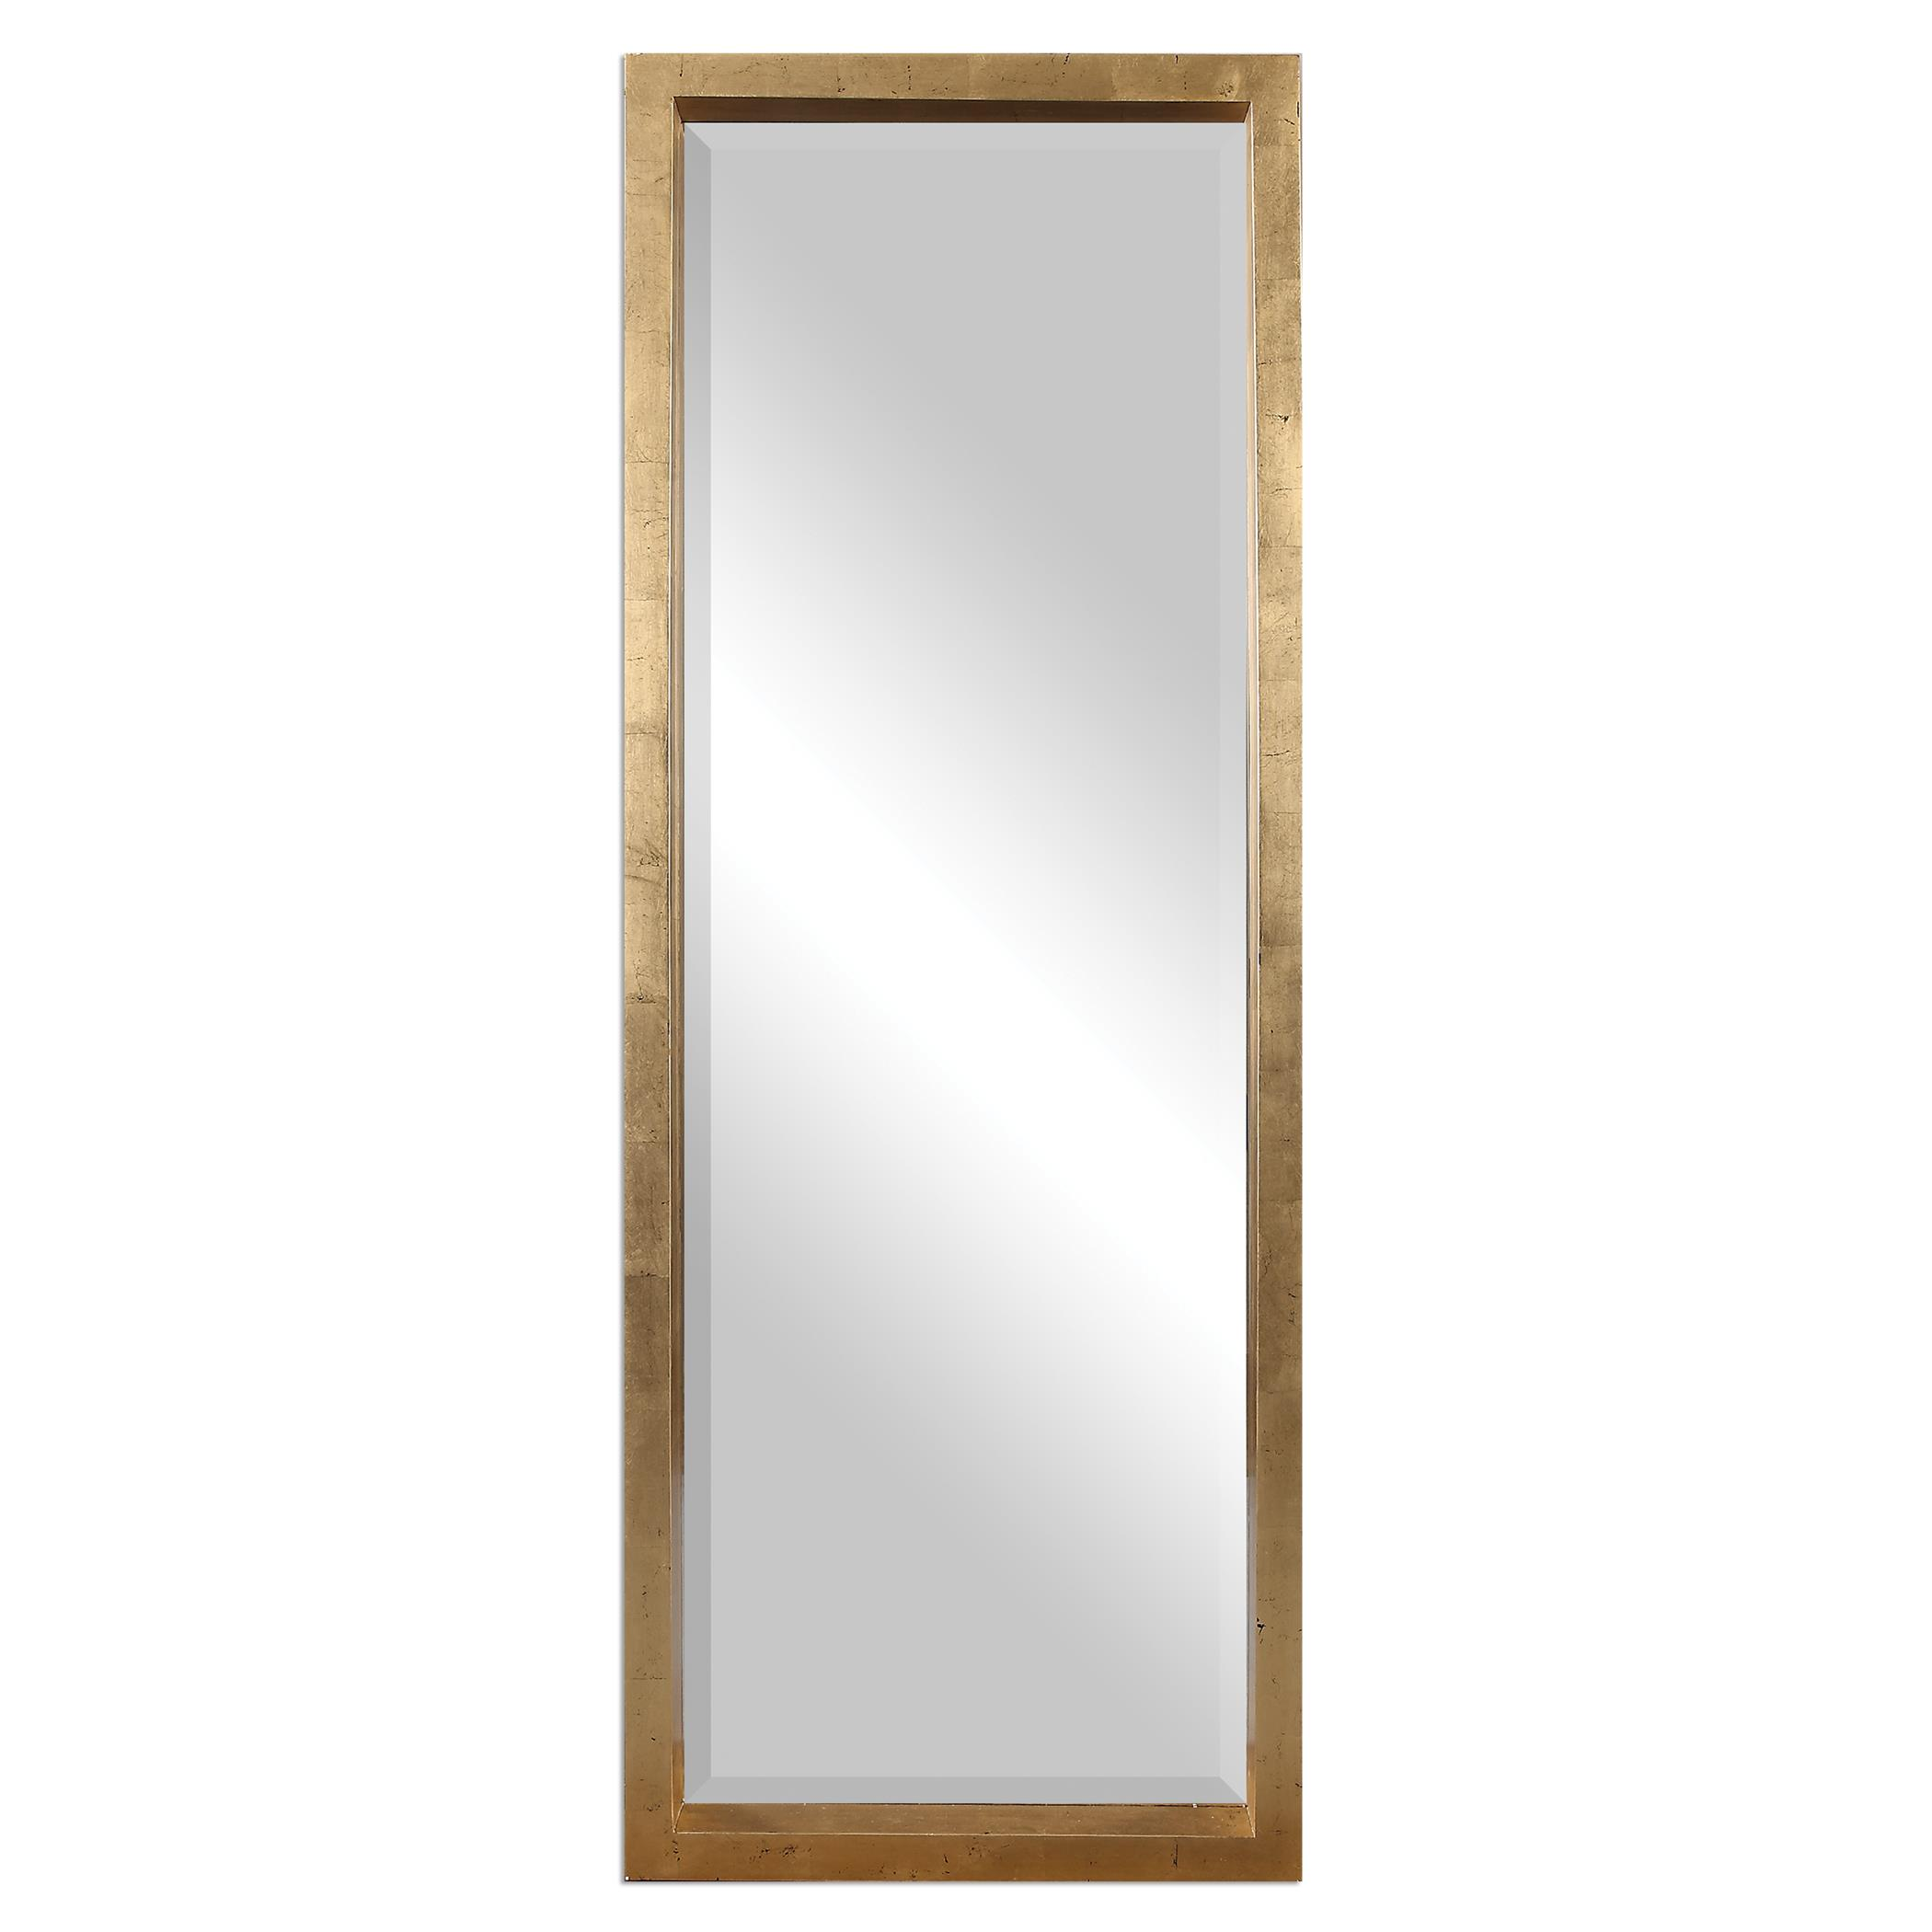 Uttermost Mirrors Edmonton Gold Leaner Mirror - Item Number: 14554